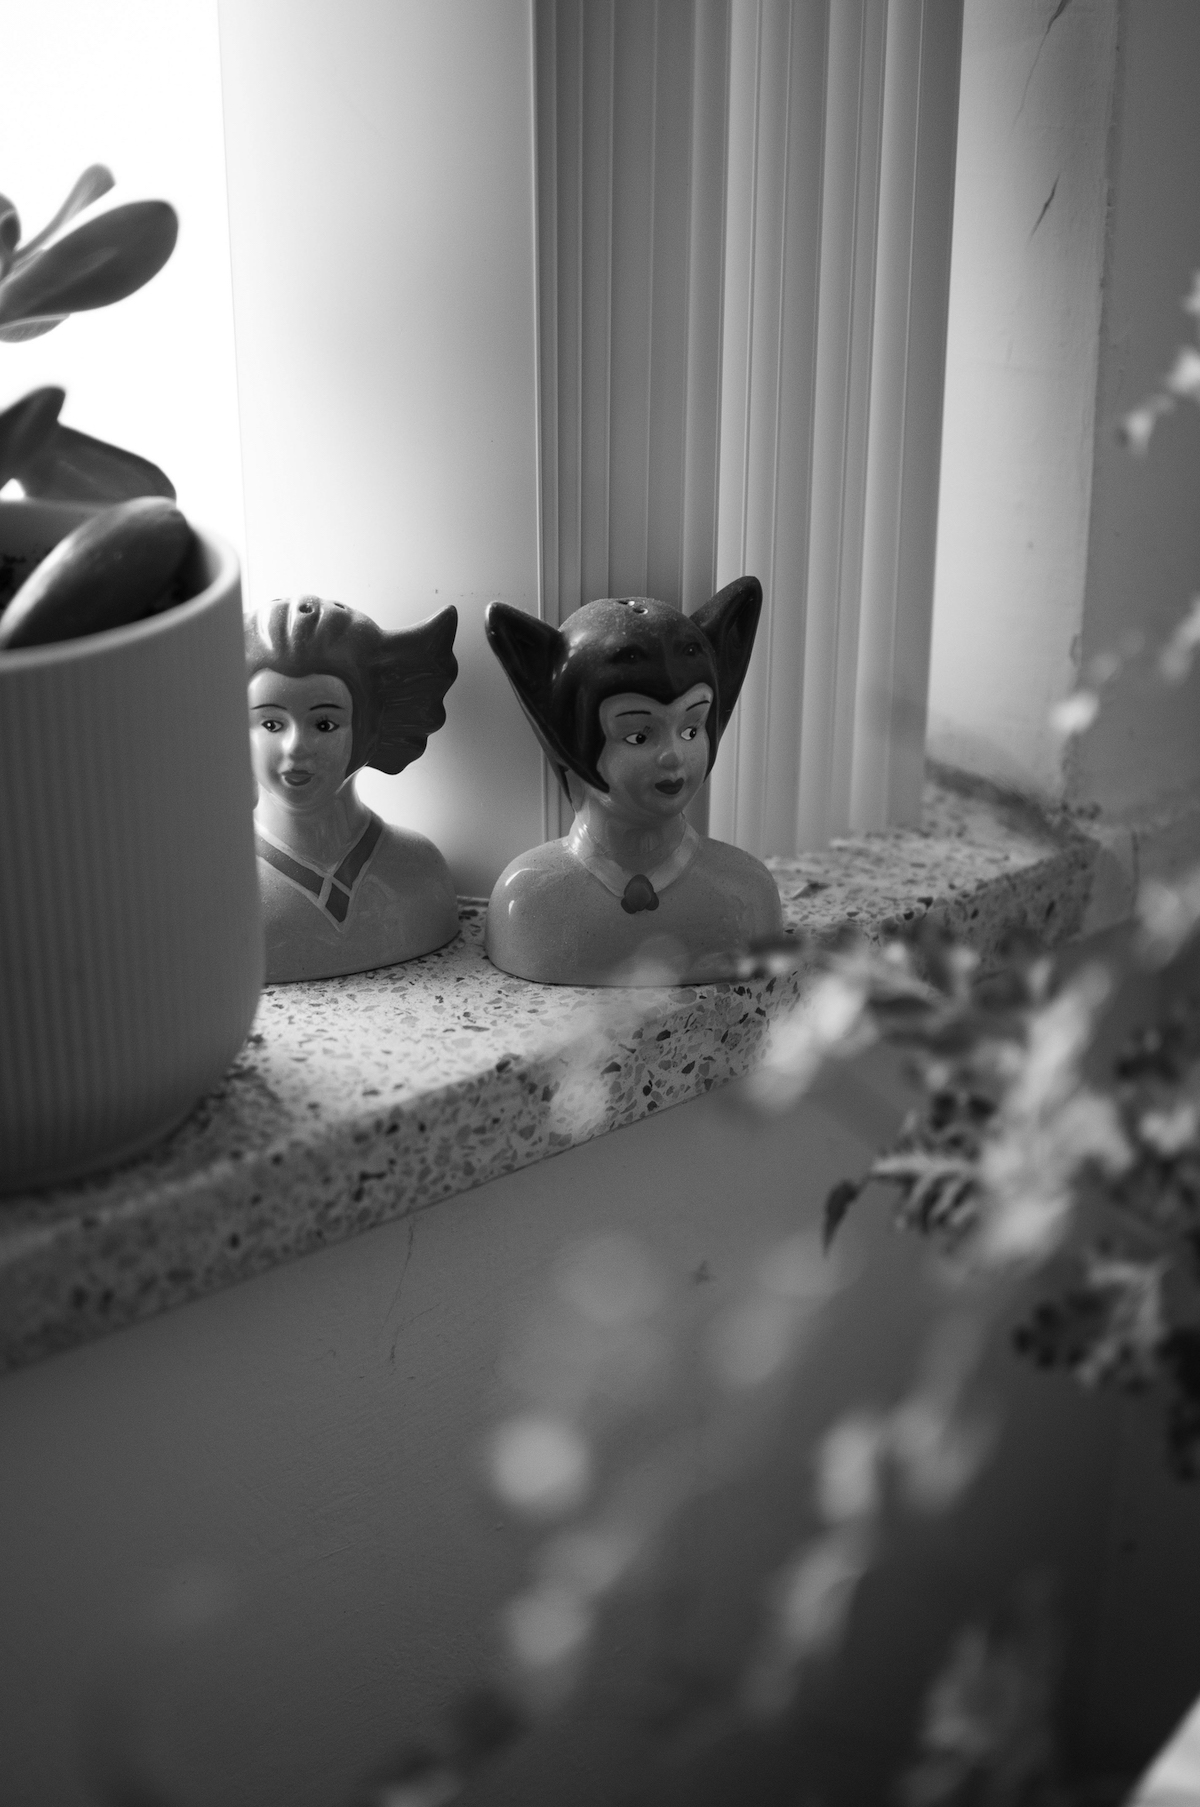 Figurines in Suzanne Carte's home